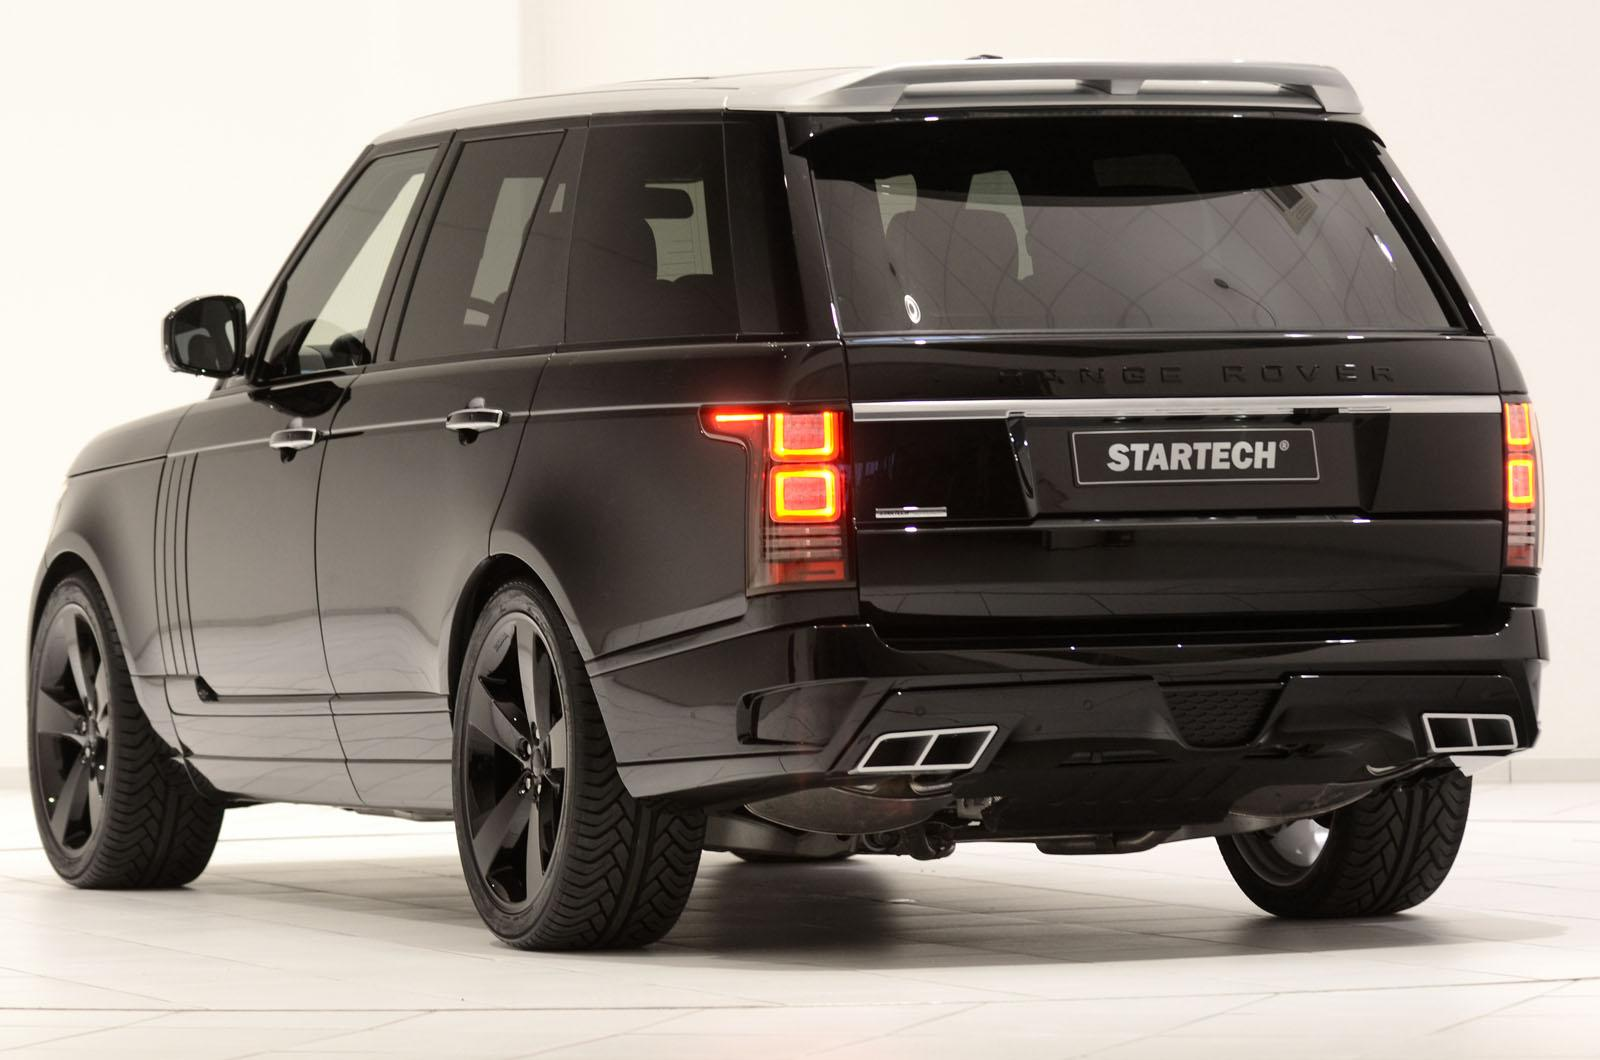 Startech Reveals Amazing Range Rover Body Kit Autoevolution